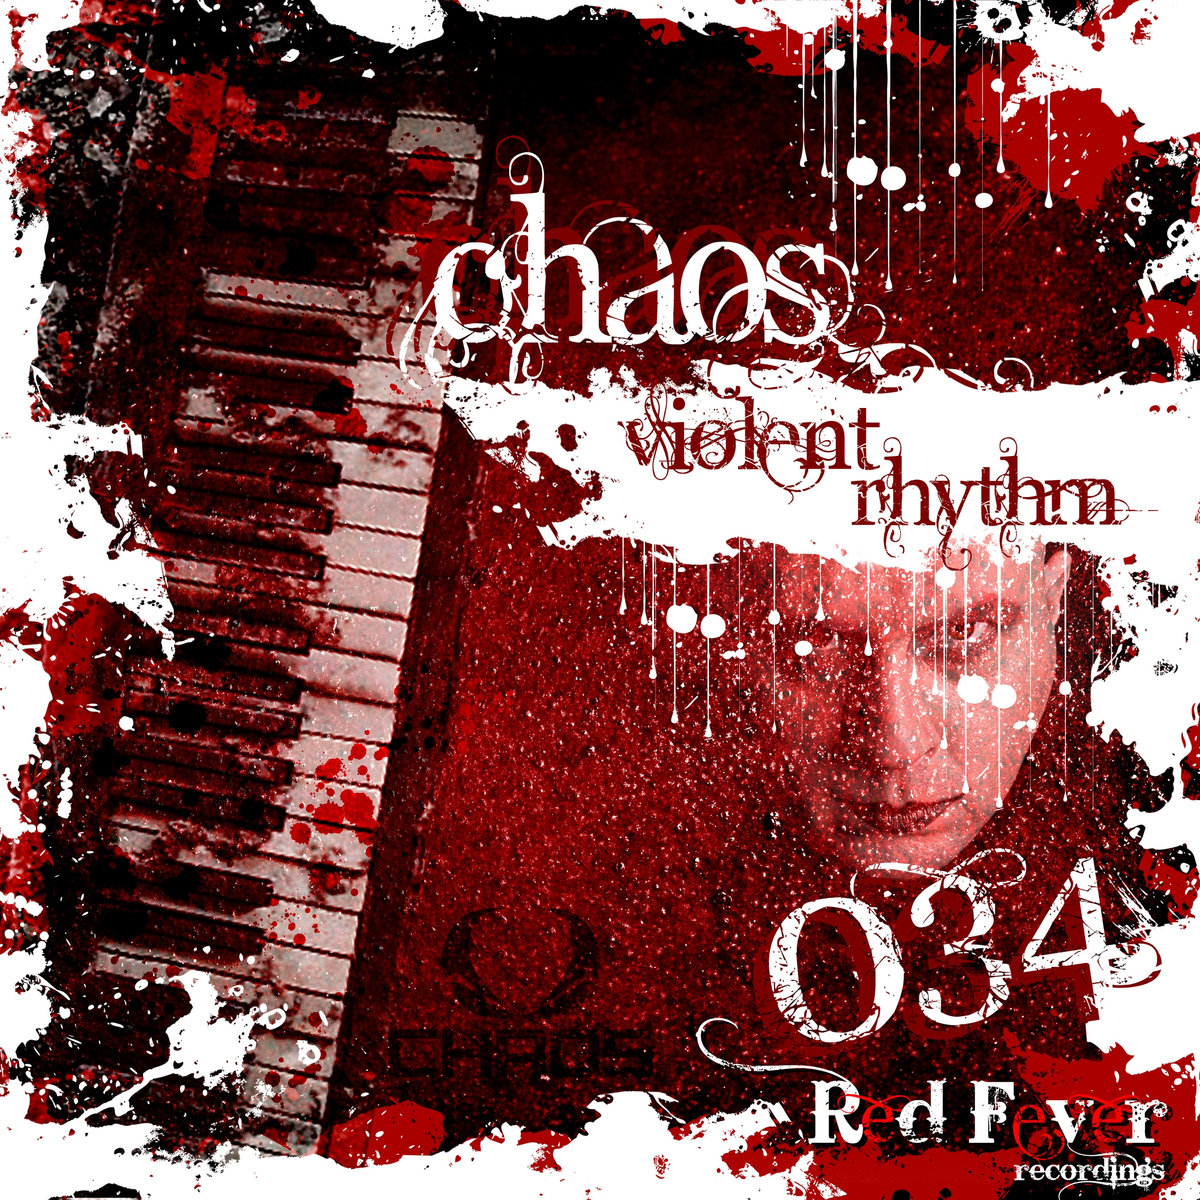 Chaos - Violent Rhythm (artwork)